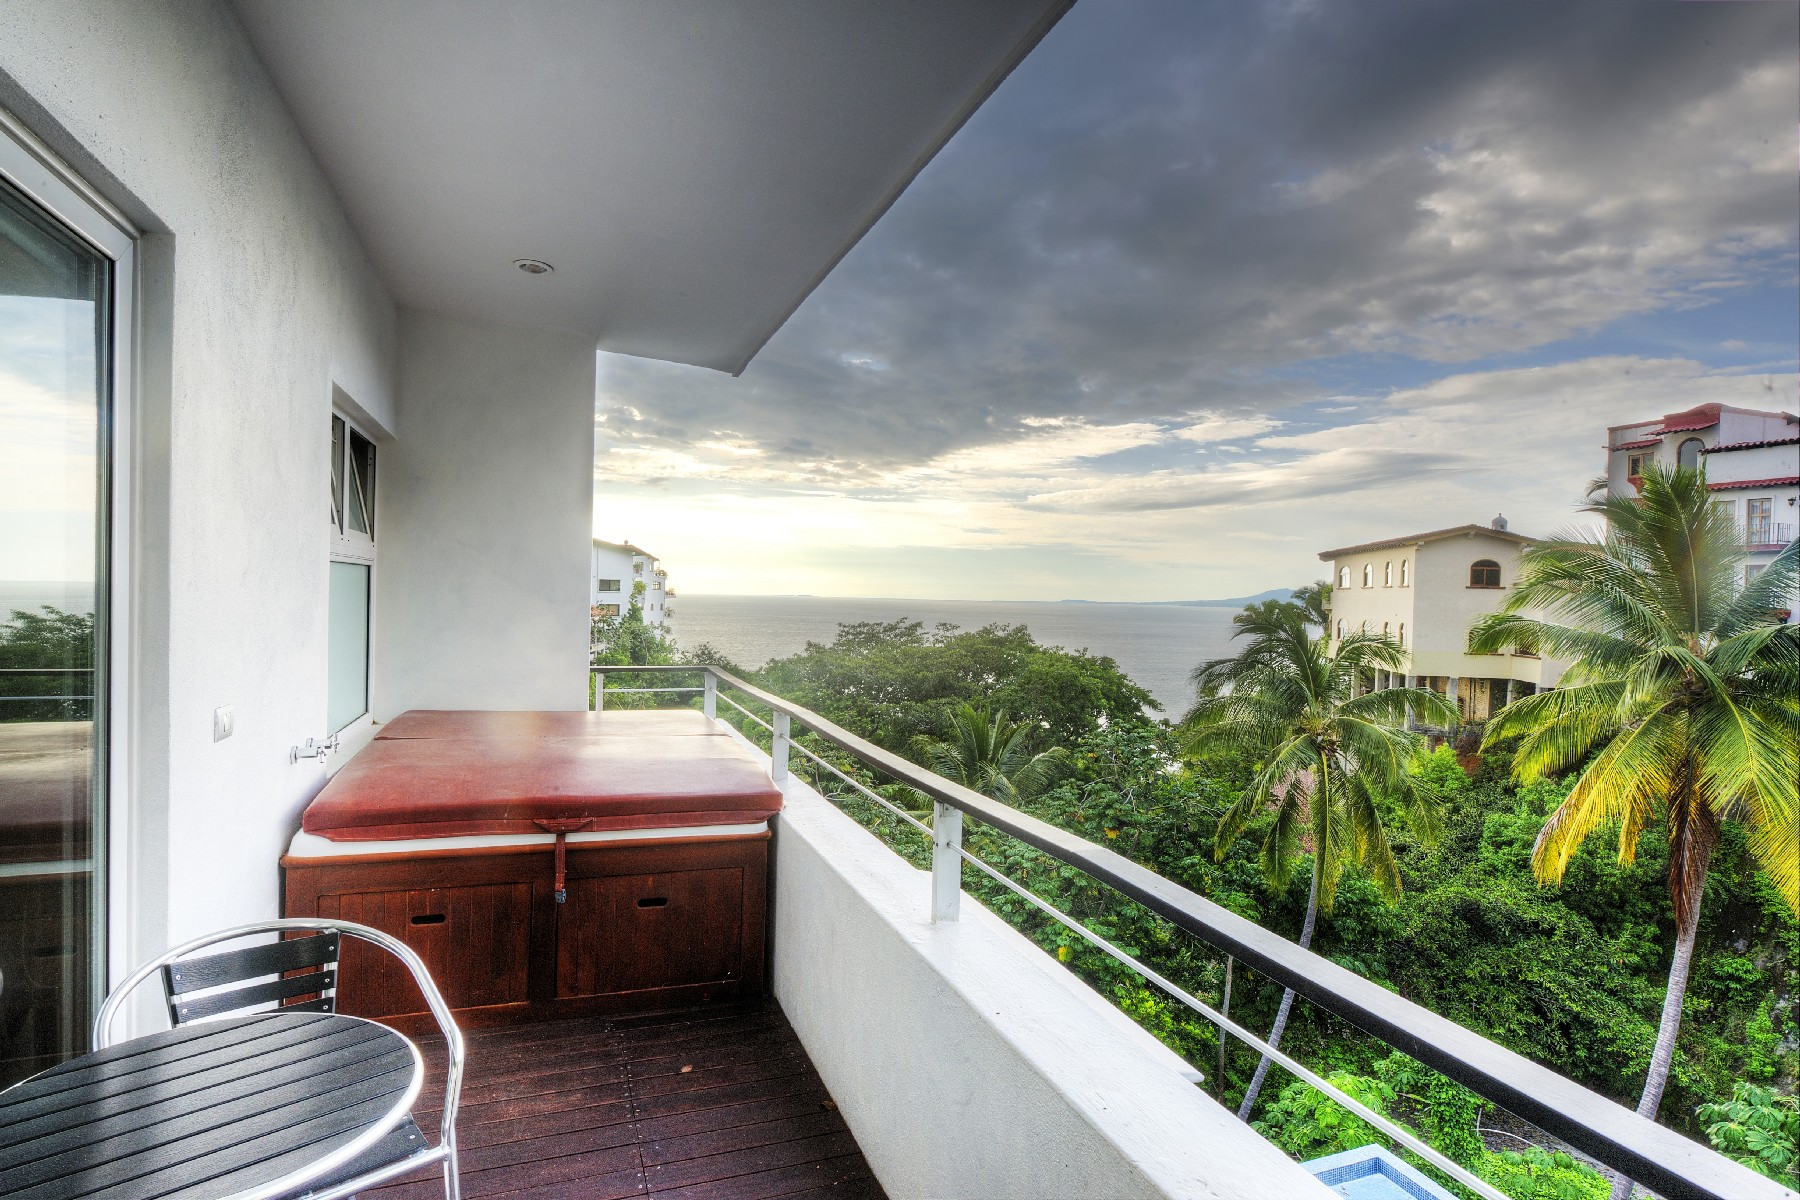 Additional photo for property listing at Villa Enigma Puerto Vallarta, Jalisco Mexico